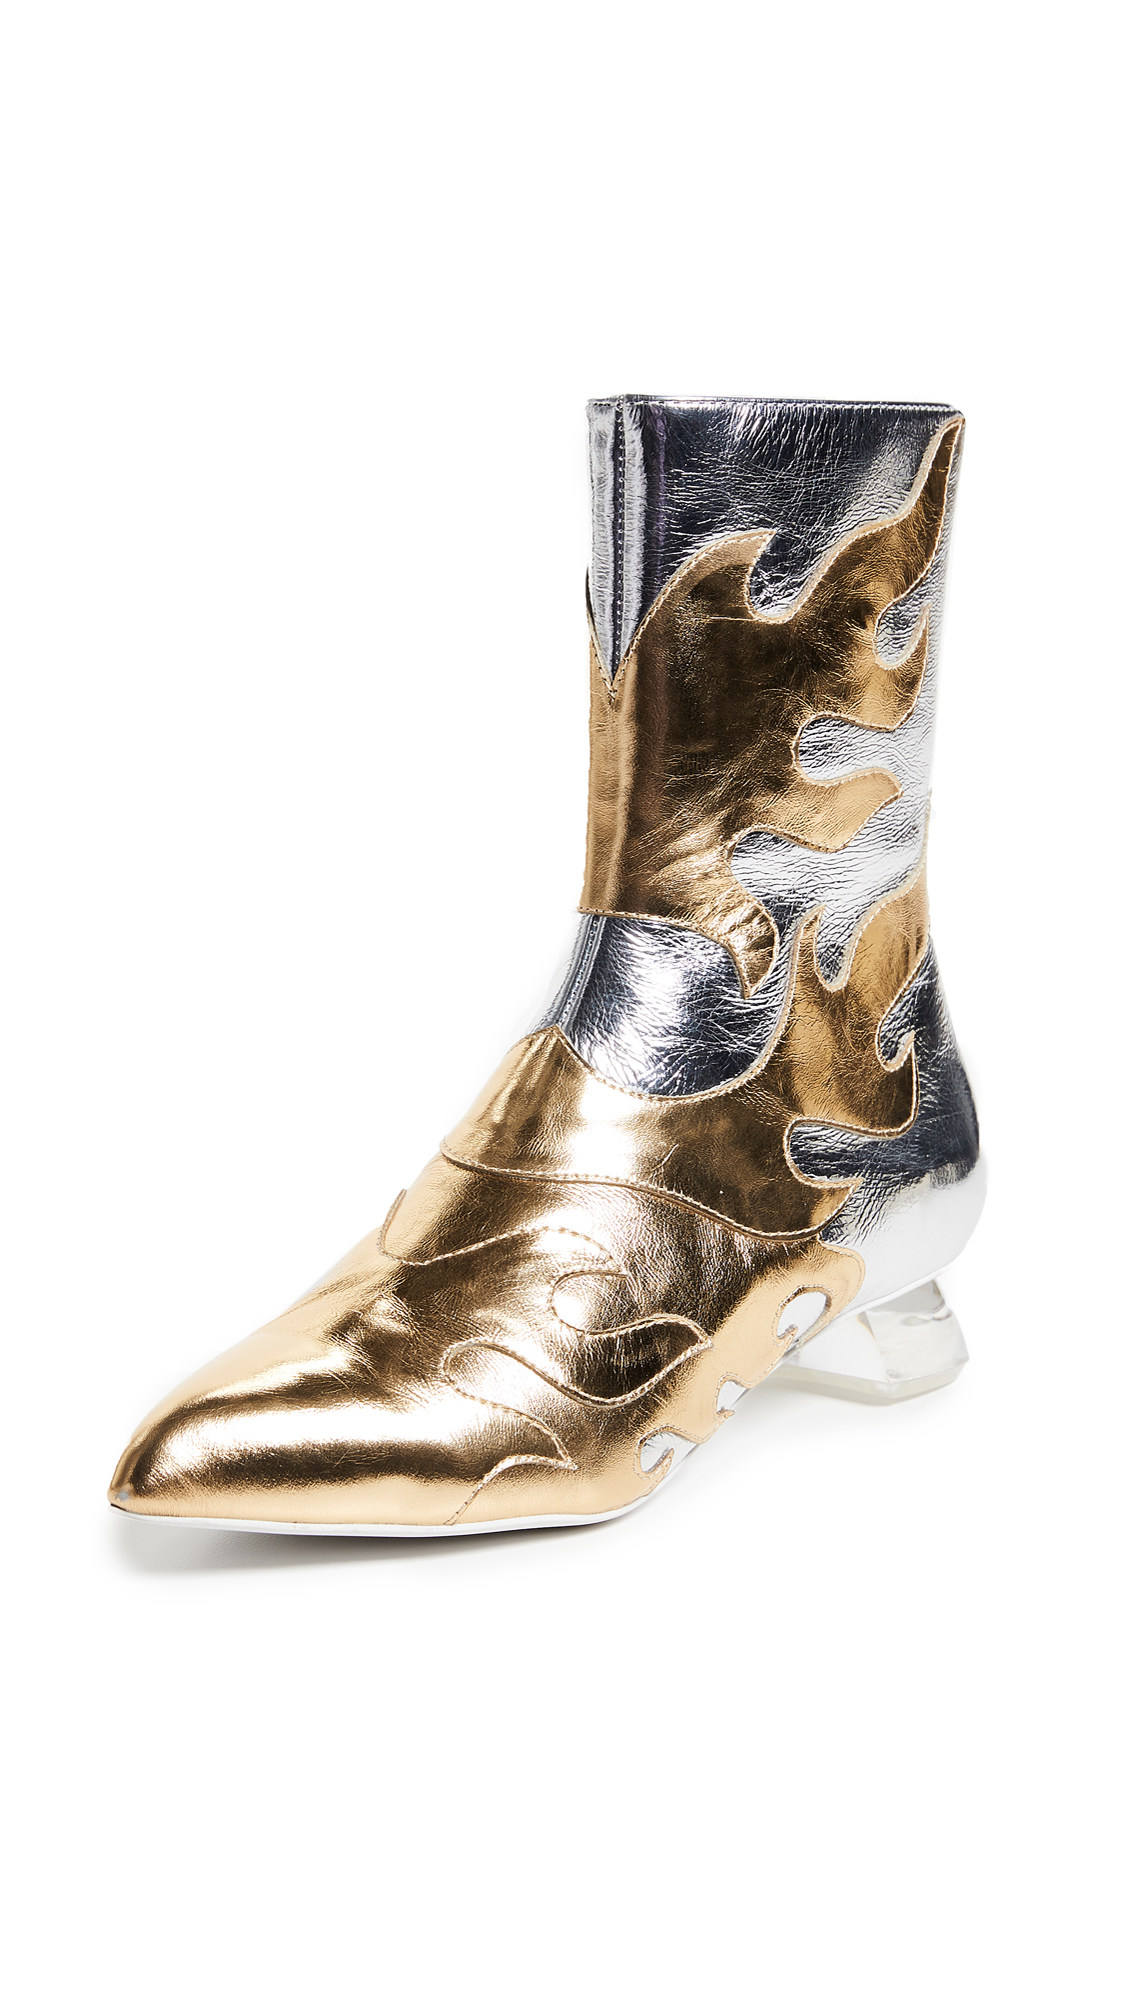 Jeffrey Campbell Skyrocket Flame Ankle Boots - Silver/Gold